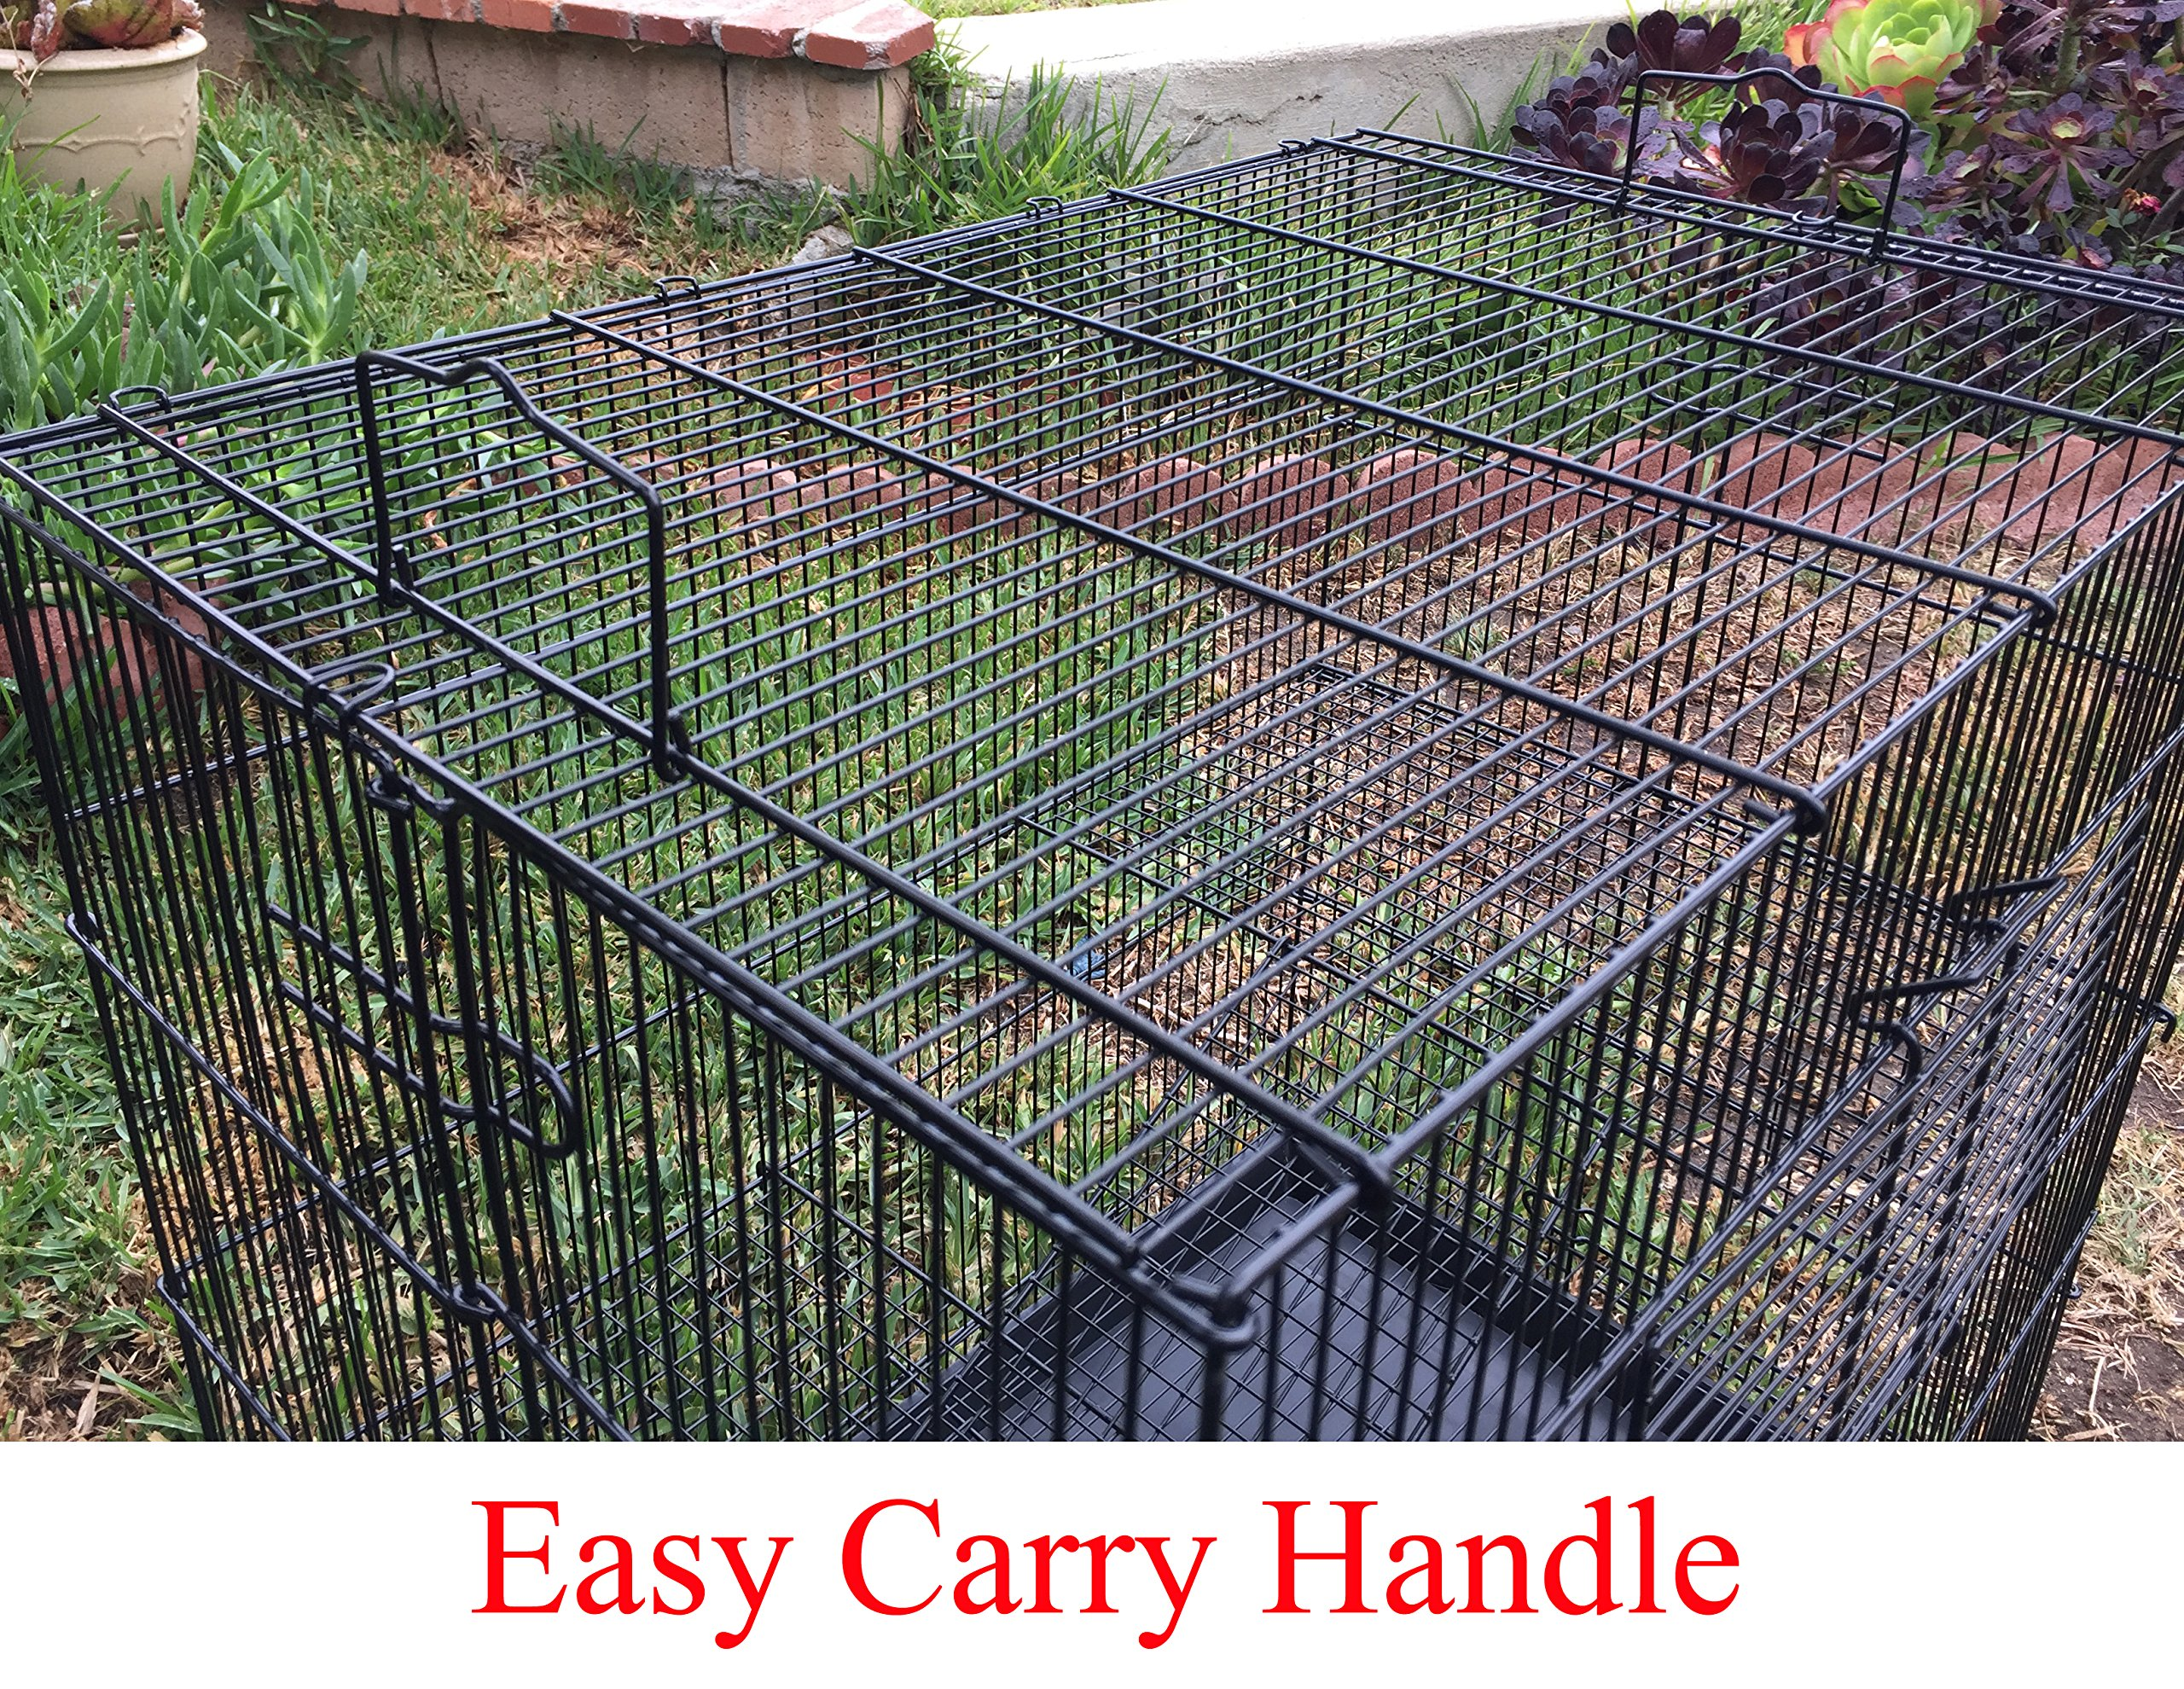 Two Size, 3 Level Ferret Chinchilla Sugar Glider Rats Animal Cage With 1/2 Inch Cross Shelves and Ladders by Mcage (Image #1)